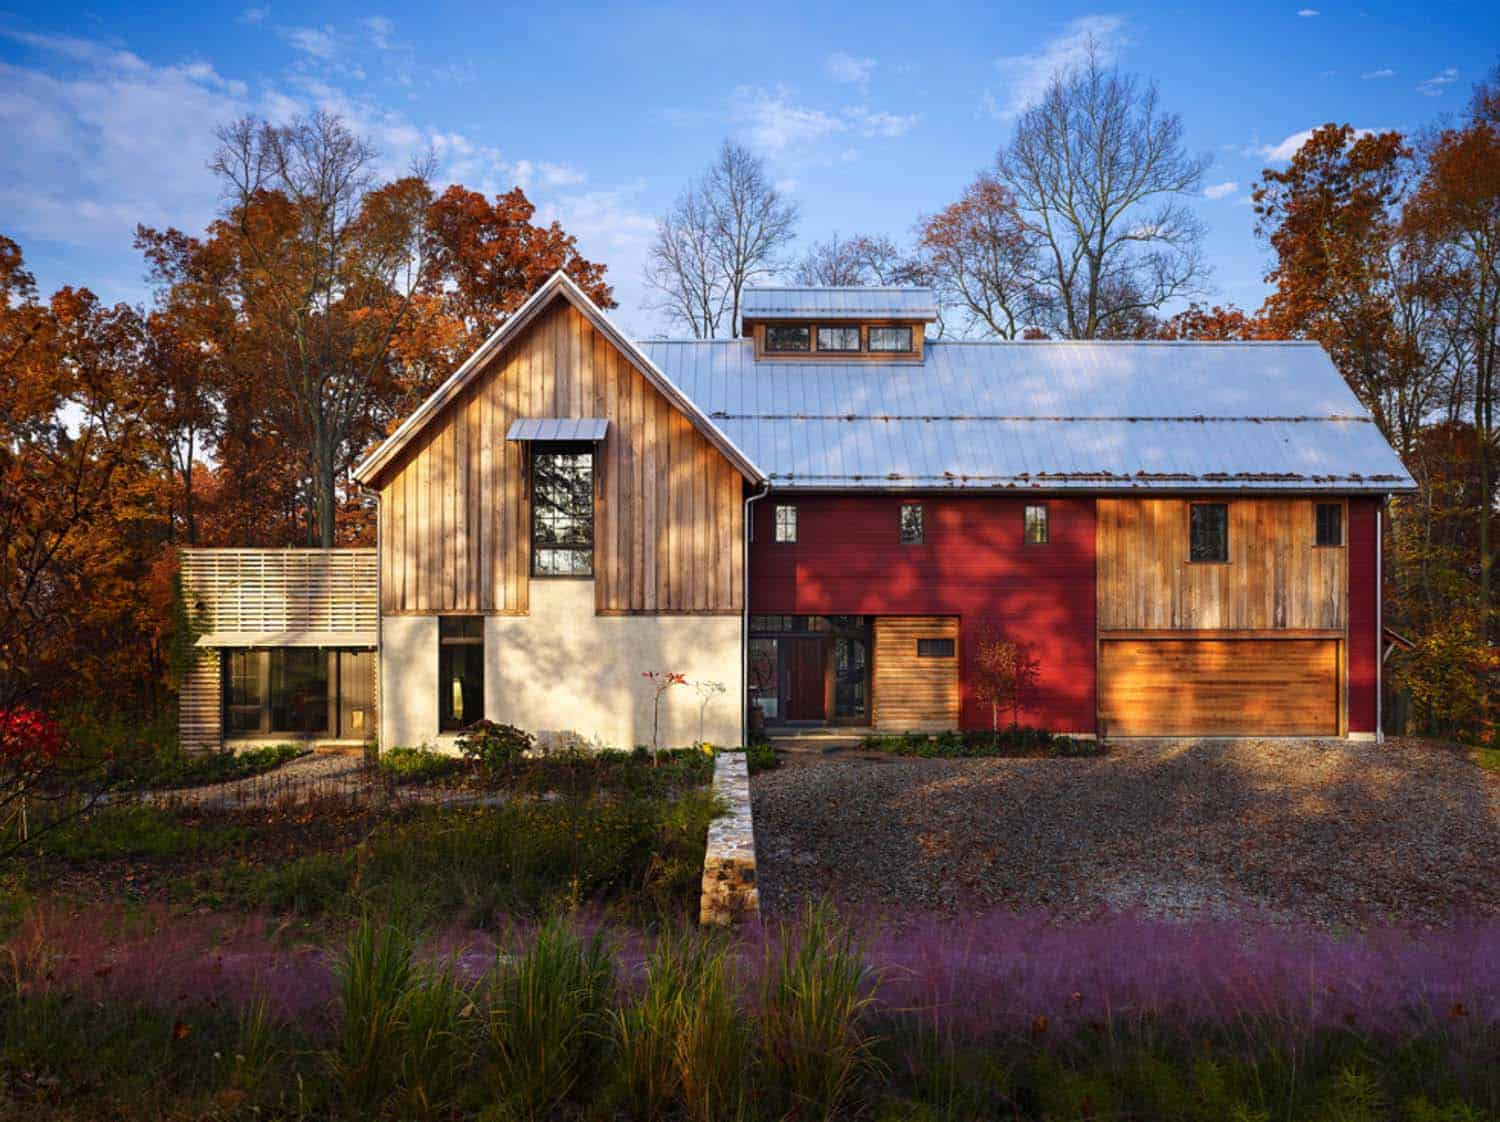 sustainable-farmhouse-moger-mehrhof-architects-01-1-kindesign